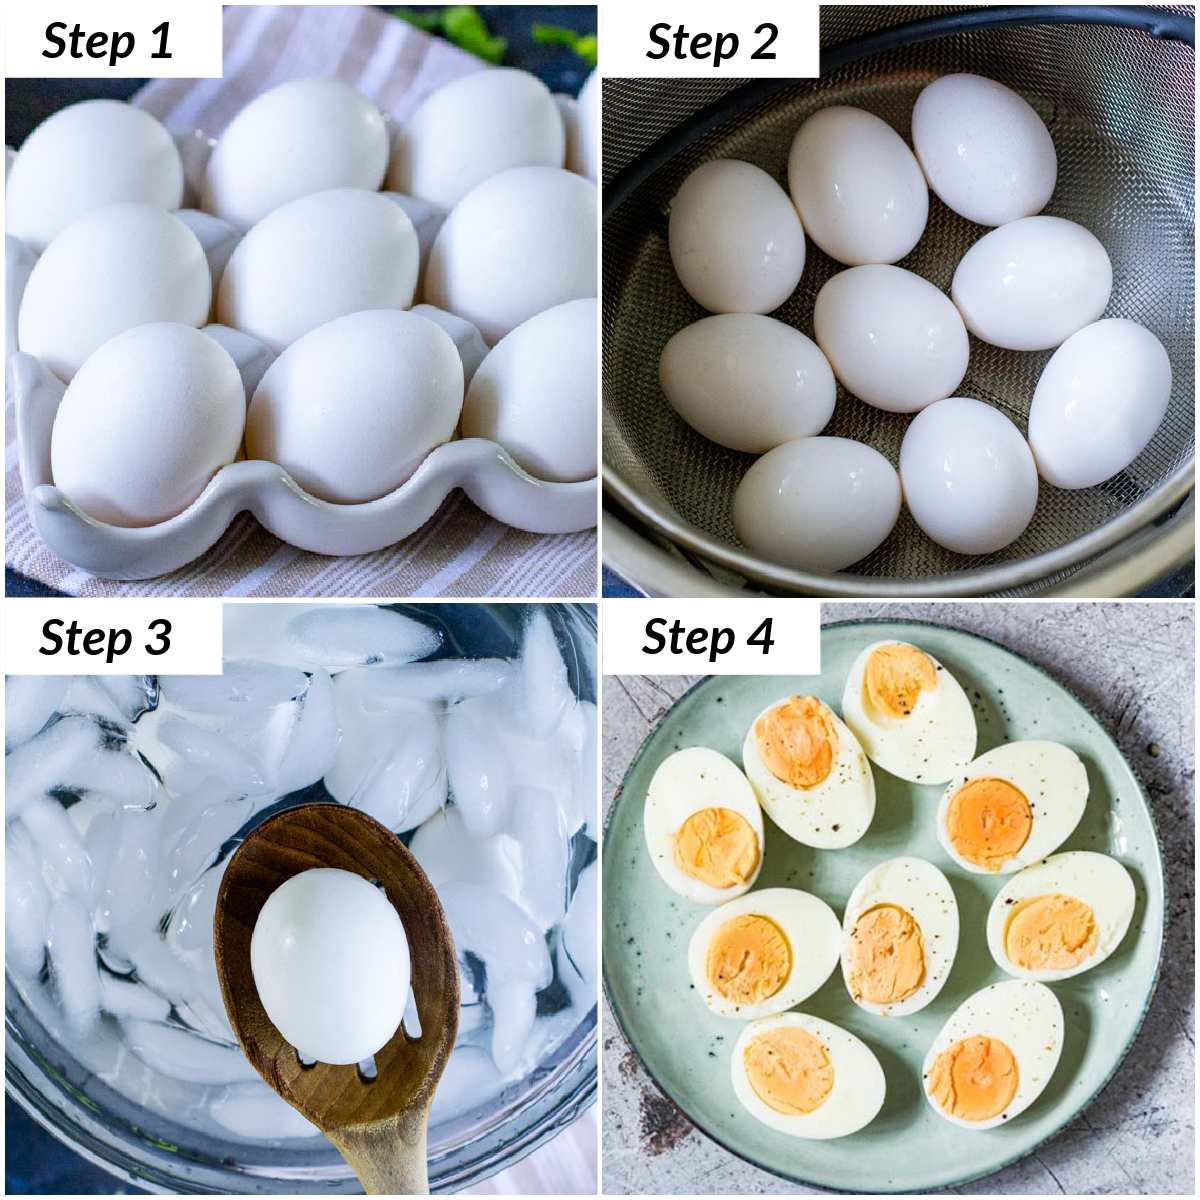 image collage showing the steps for making instant pot hard boiled eggs